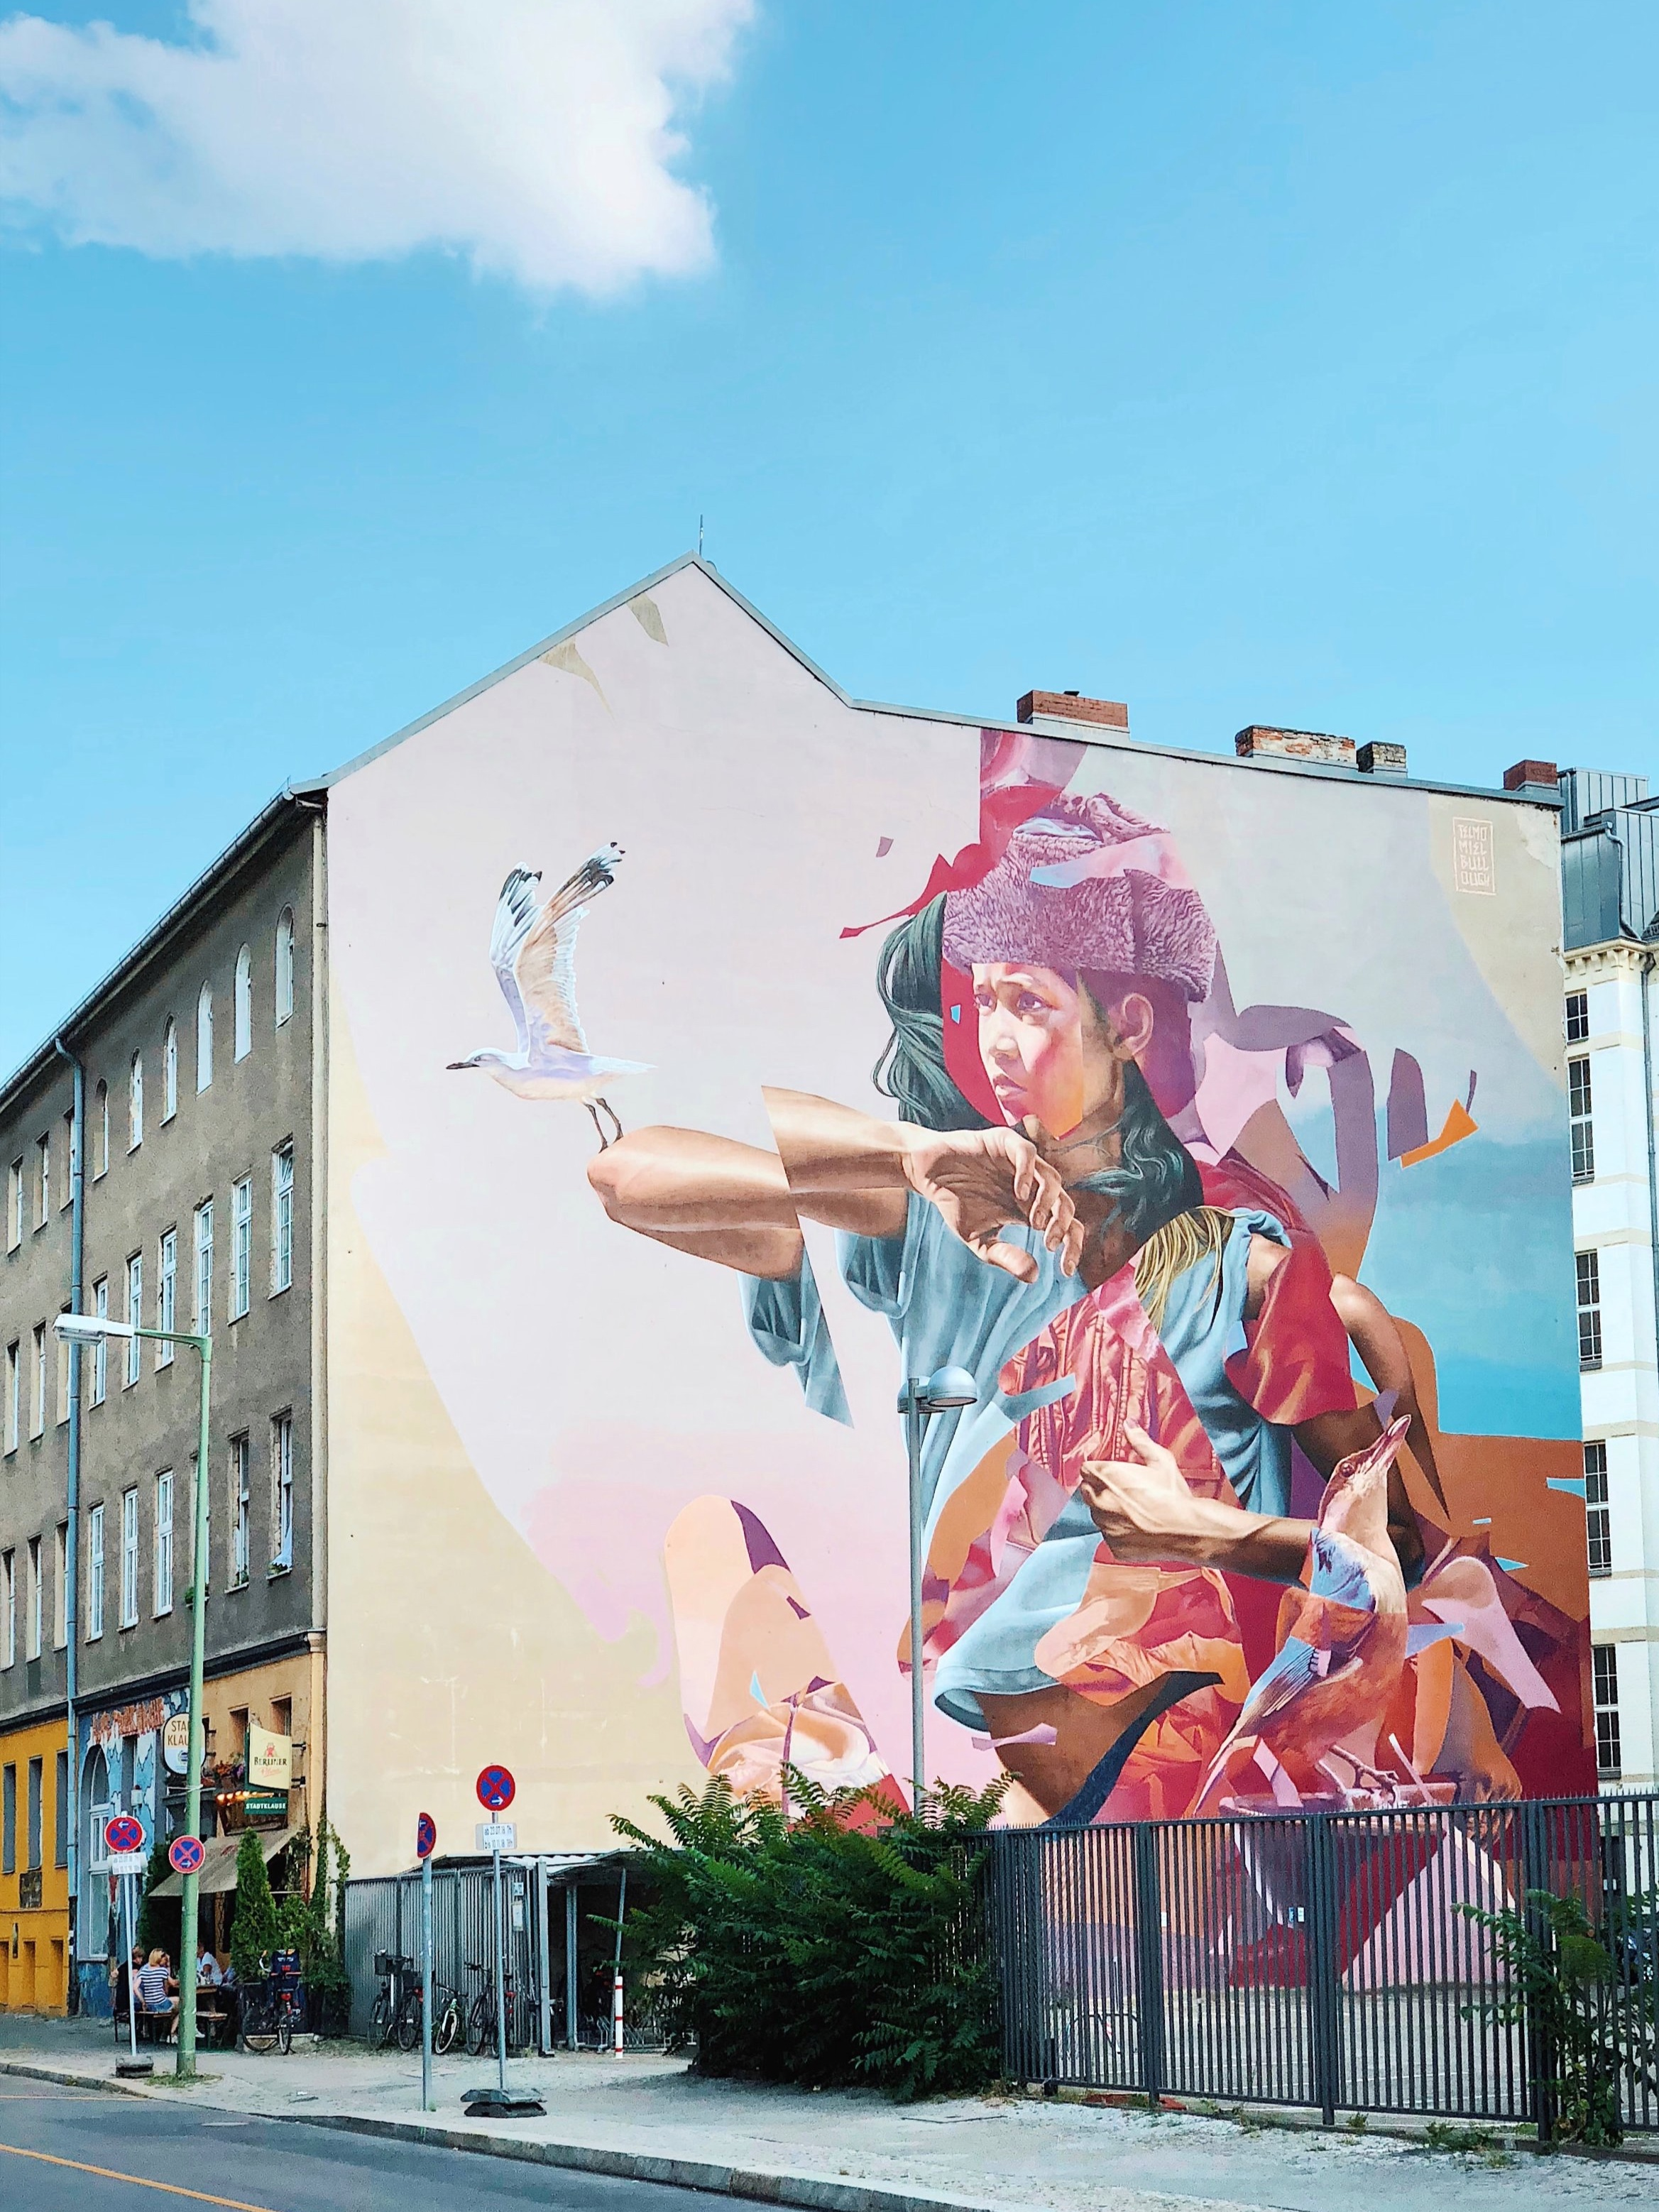 TRANSFORMING SPACES-MURAL ART AND DESIGN - Explore, document and create a transformation on the urban spaces!